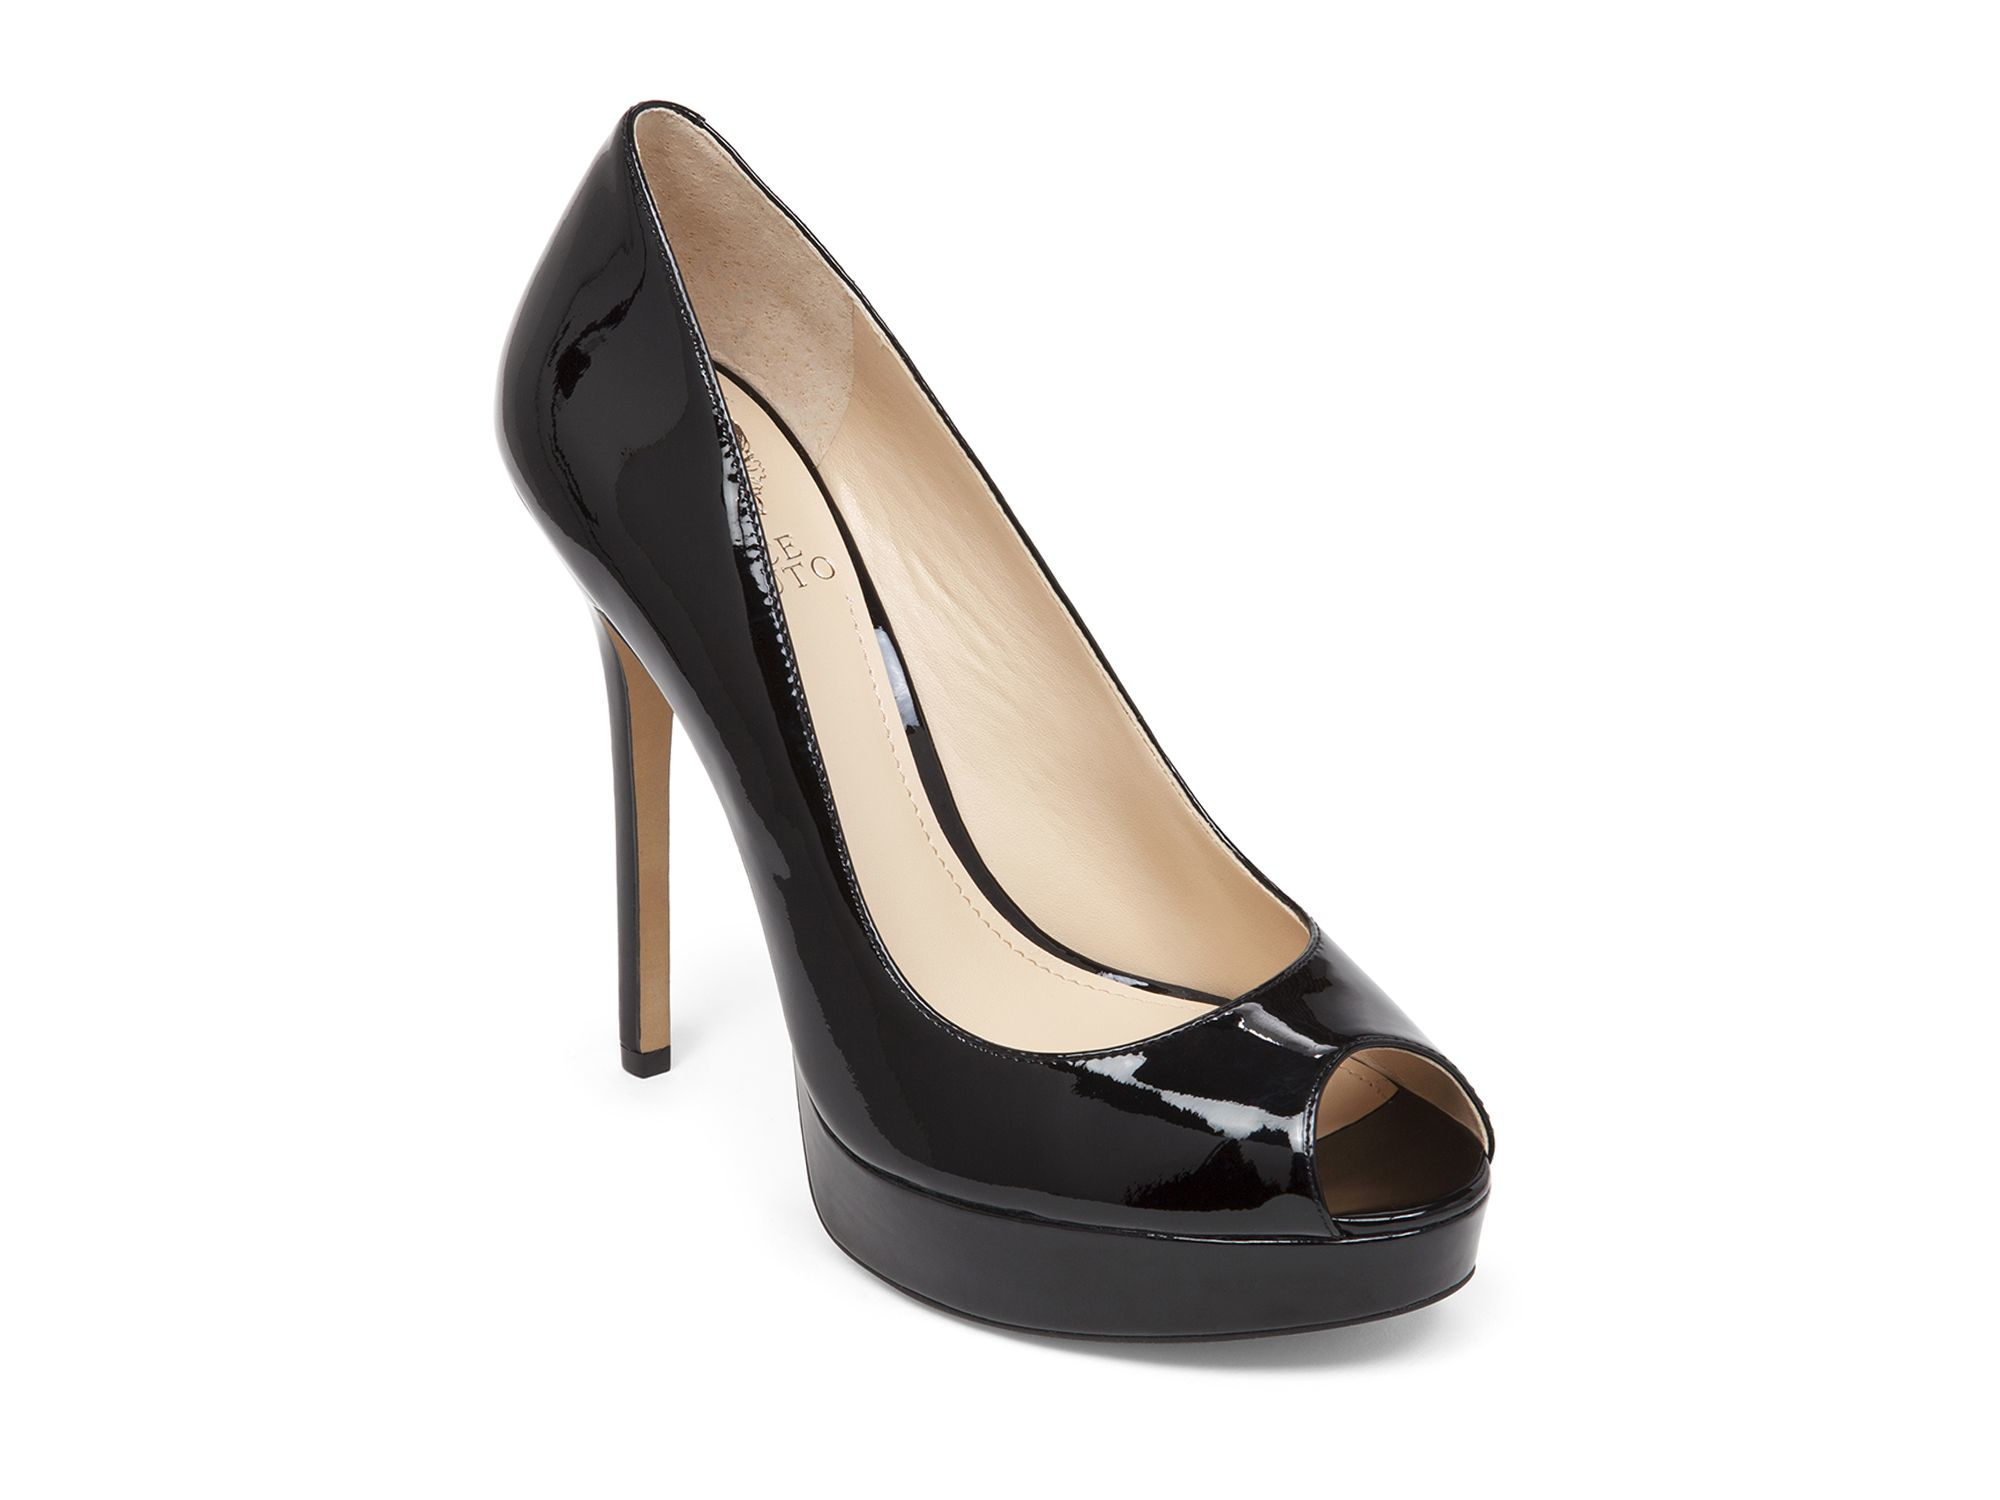 Vince Camuto Peep Toe Pumps Lorim Patent In Black Lyst